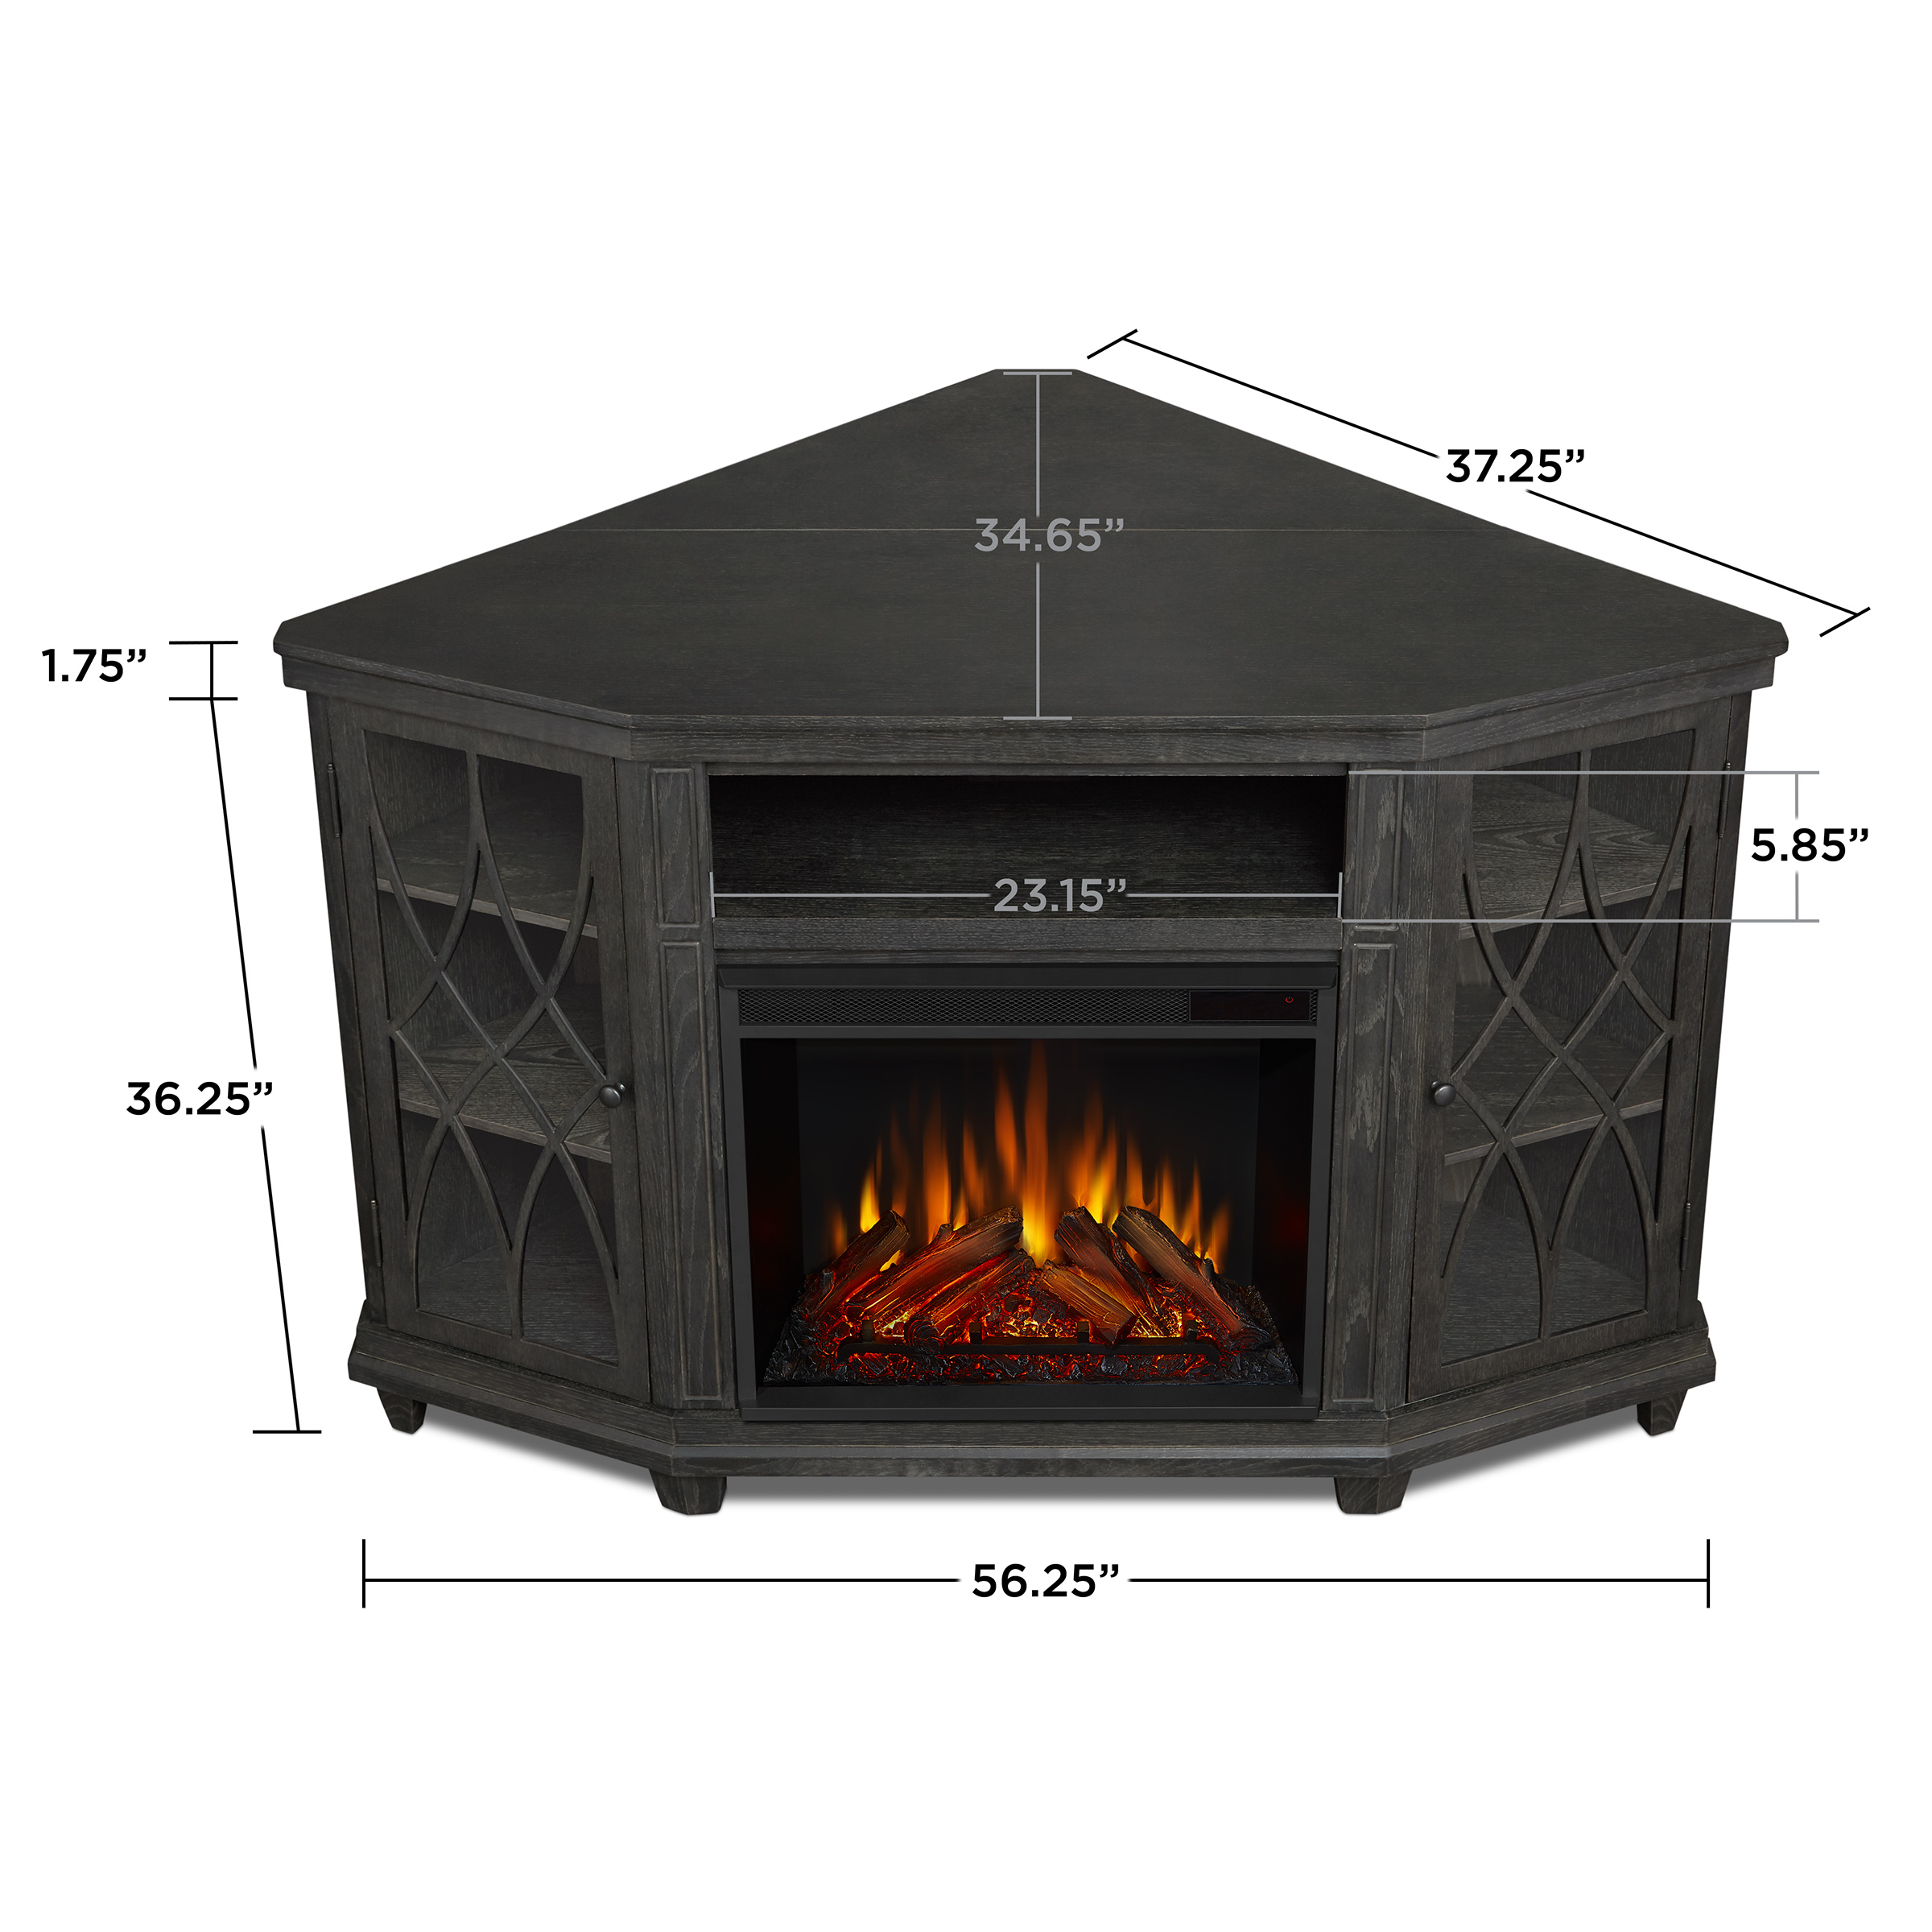 Gray Electric Fireplace Dimensions